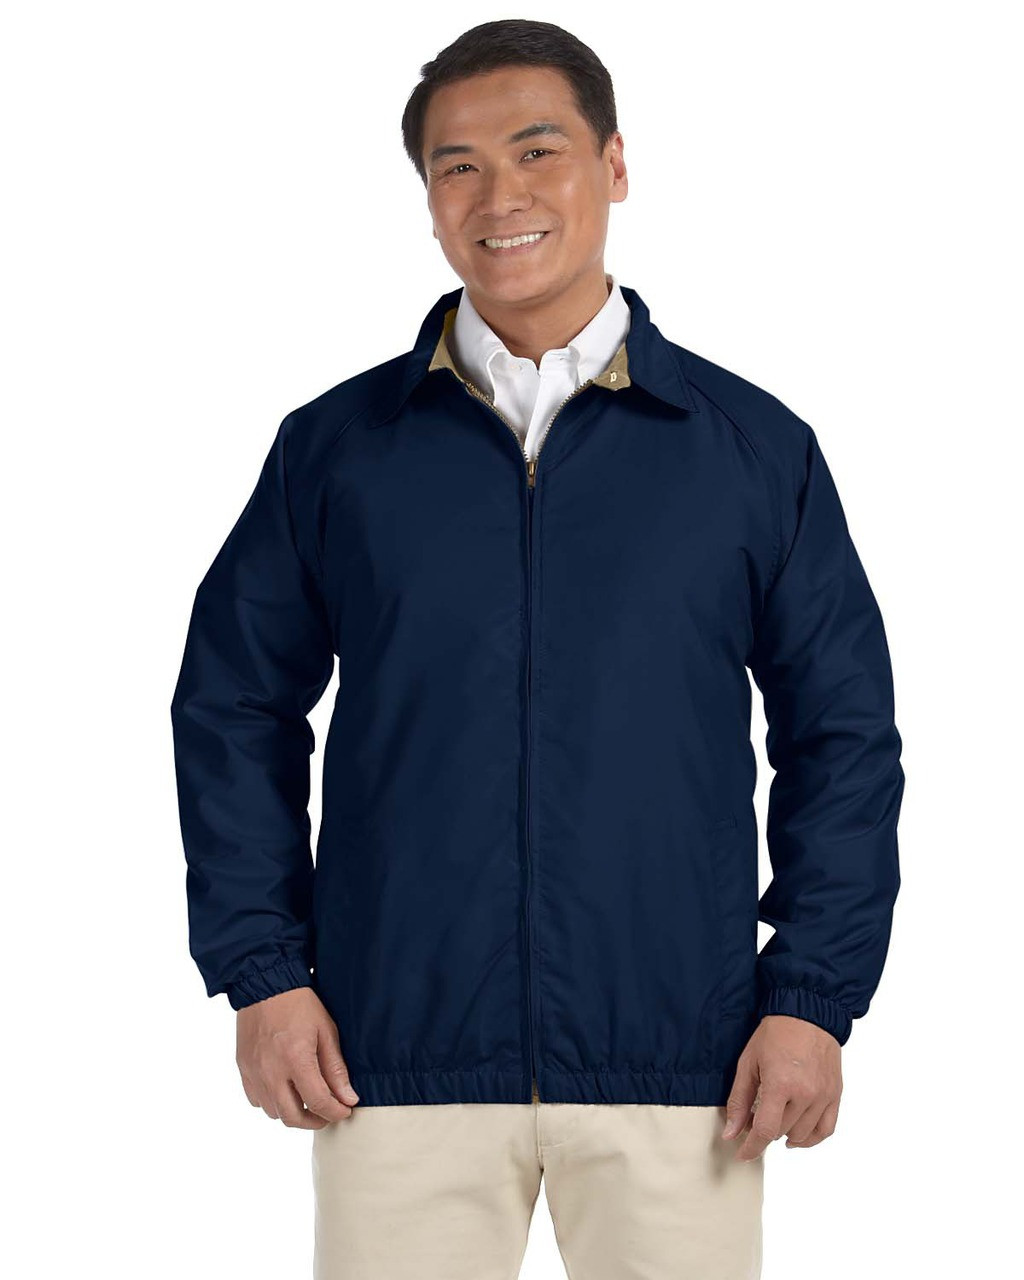 Navy/Stone - M710 Harriton Microfibre Club Jacket | Blankclothing.ca